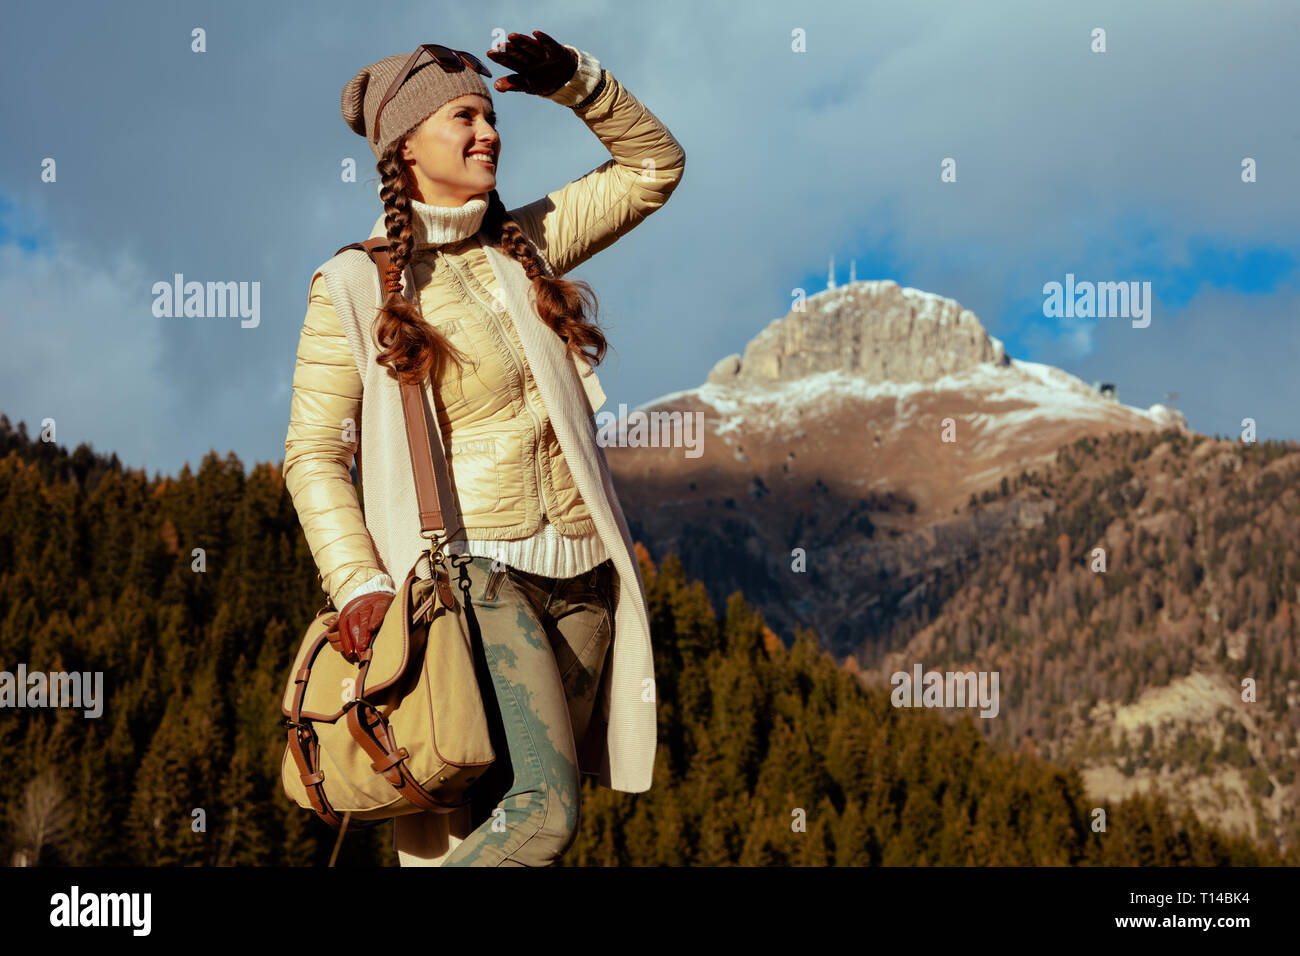 smiling young traveller woman in hiking clothes with bag in Alto Adige, Italy looking into the distance. - Stock Image